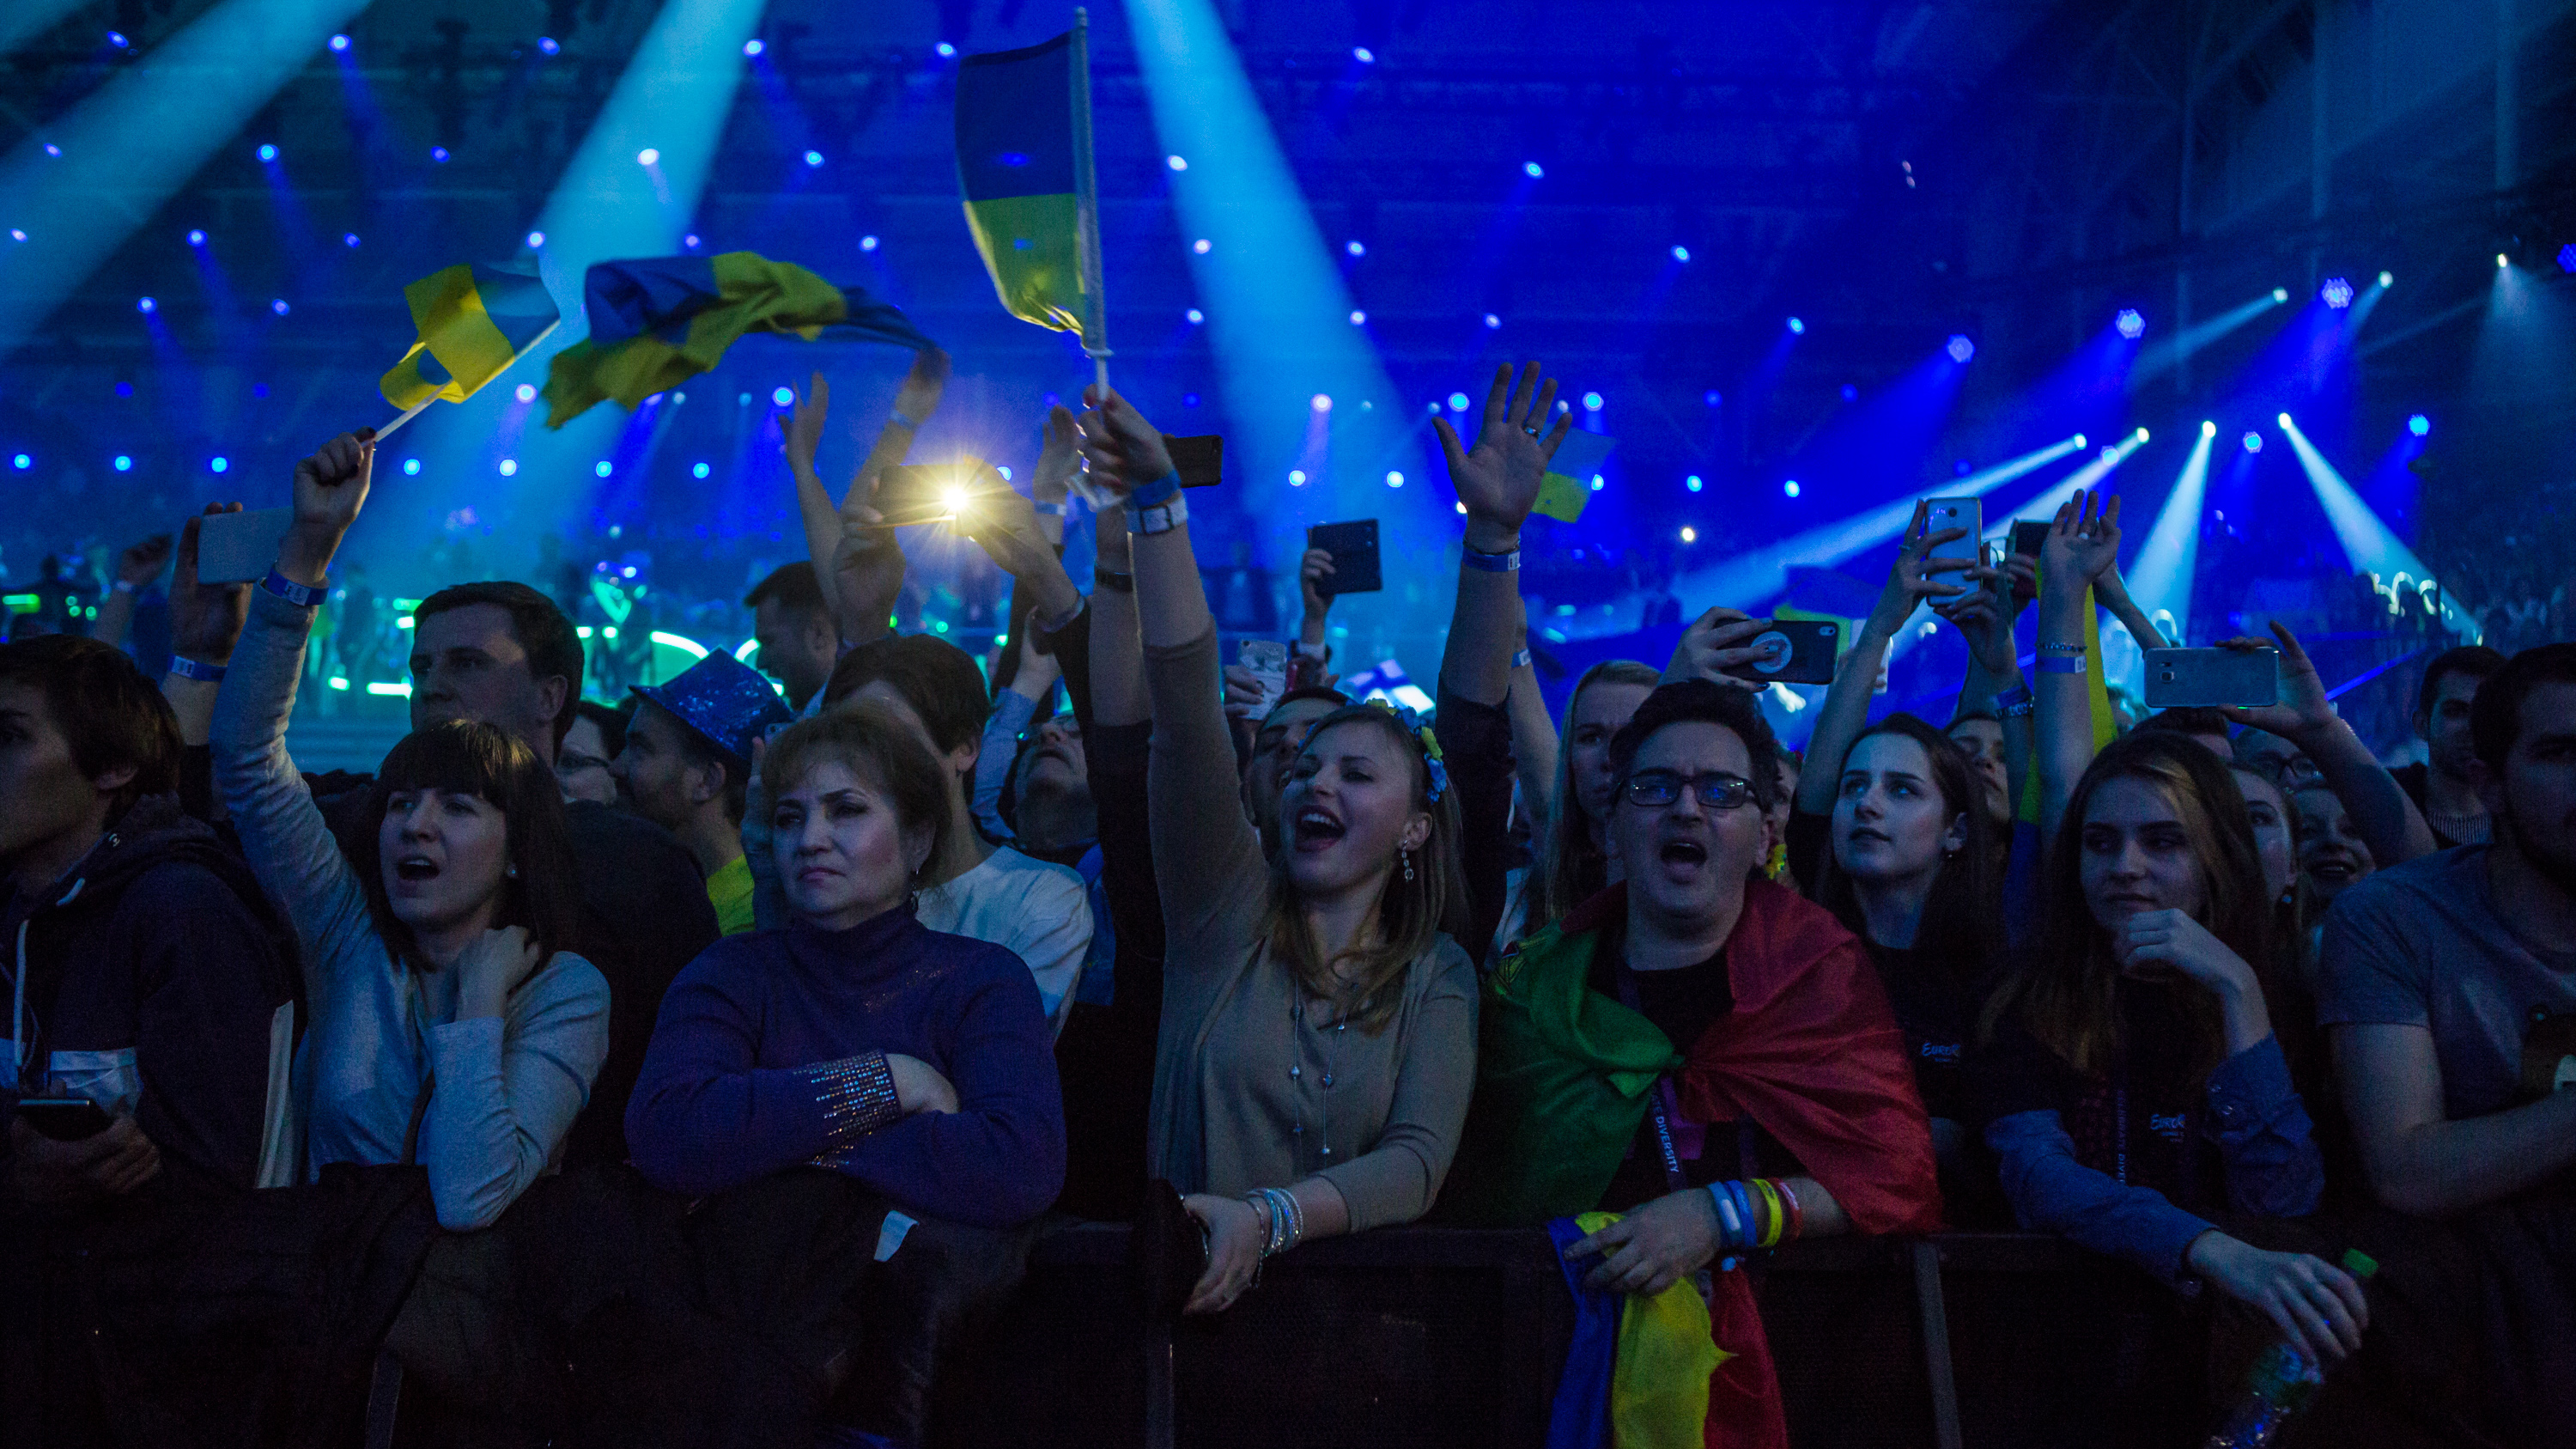 Eurovision Song Contest is coming to America